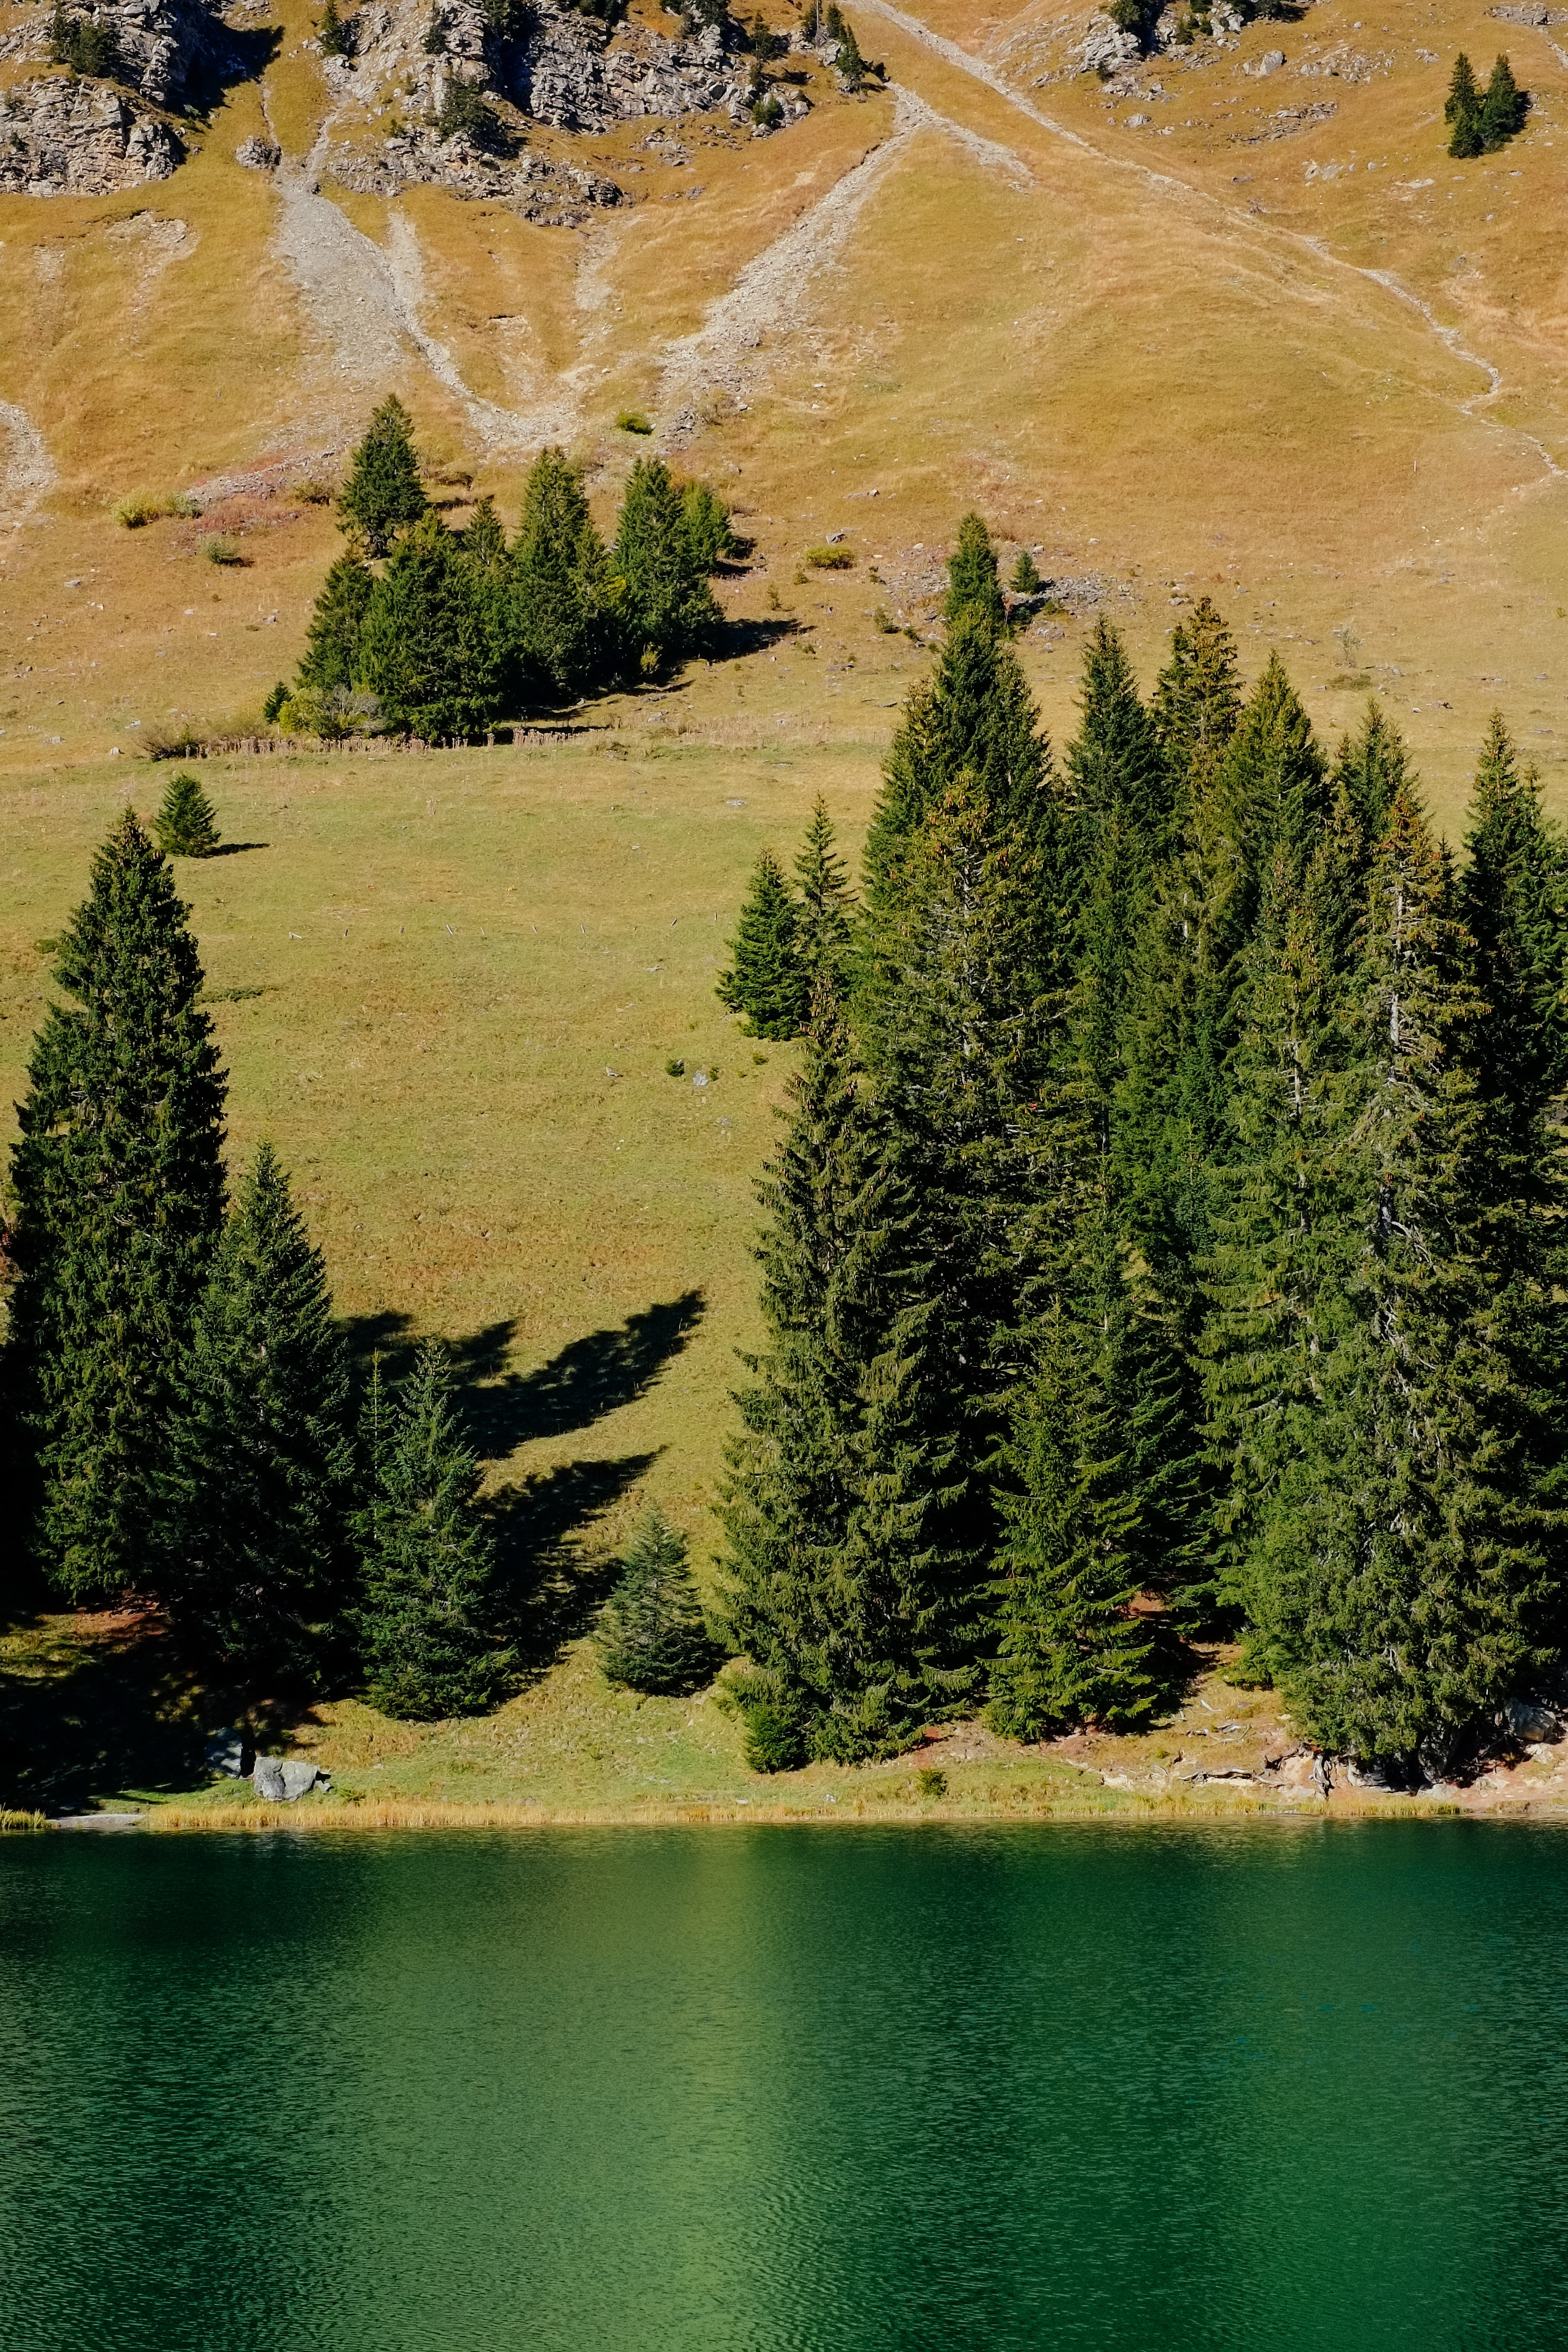 aerial photography of tall pine trees near body of water under sunny day